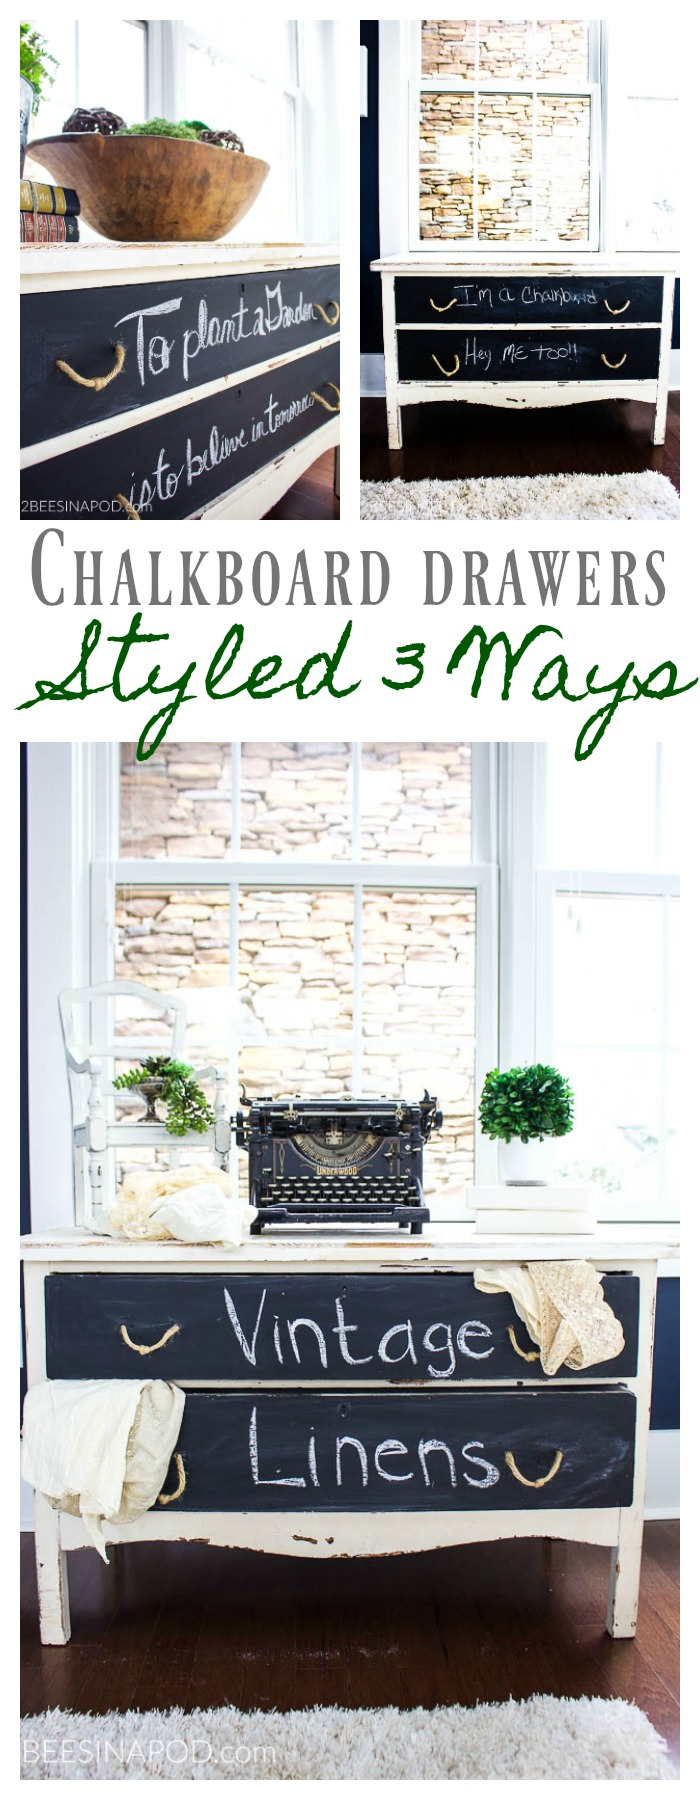 Painted Table With Chalkboard Drawers - Styled 3 Ways - 2 Bees in a Pod